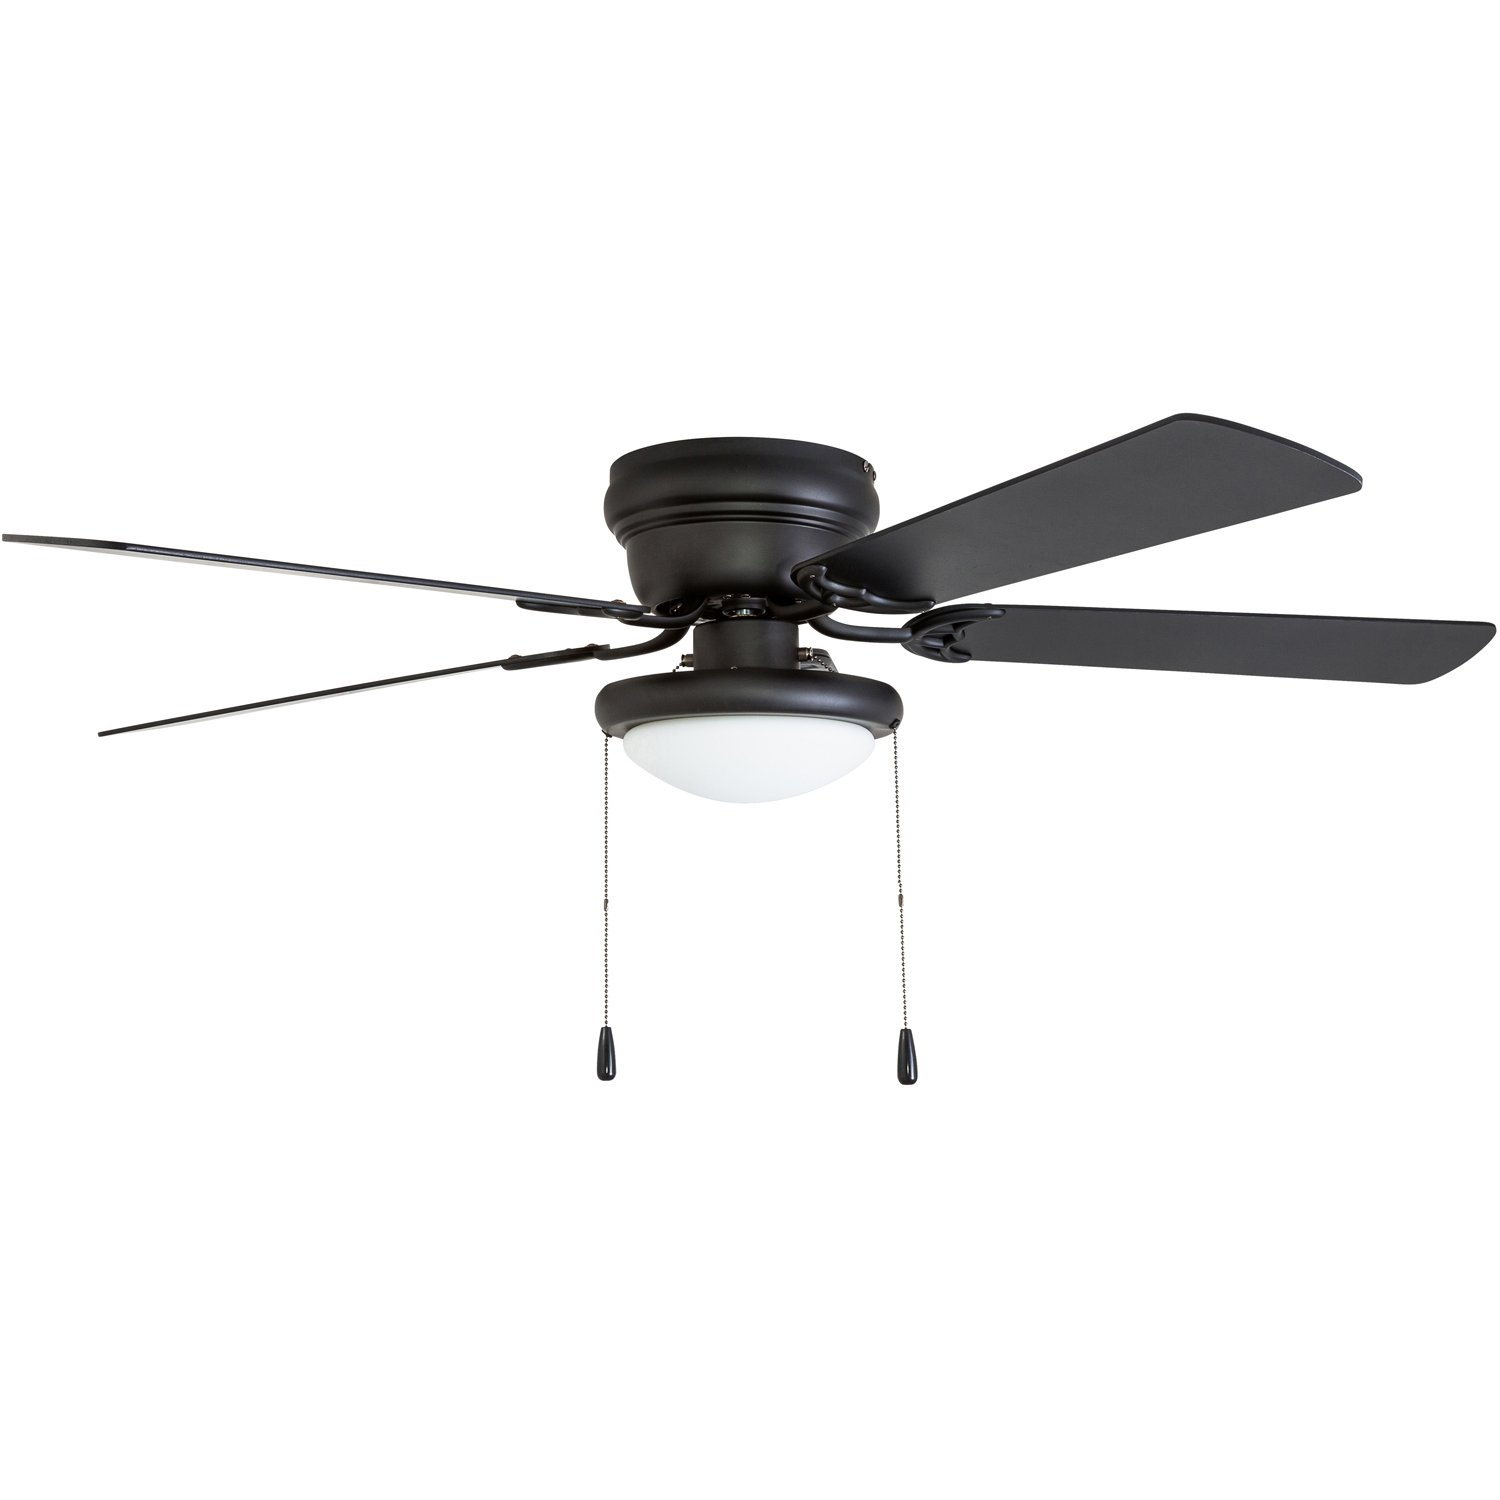 Portage Bay 50251 Hugger 52'' Matte Black West Hill Ceiling Fan with Bowl Light Kit by Portage Bay (Image #10)